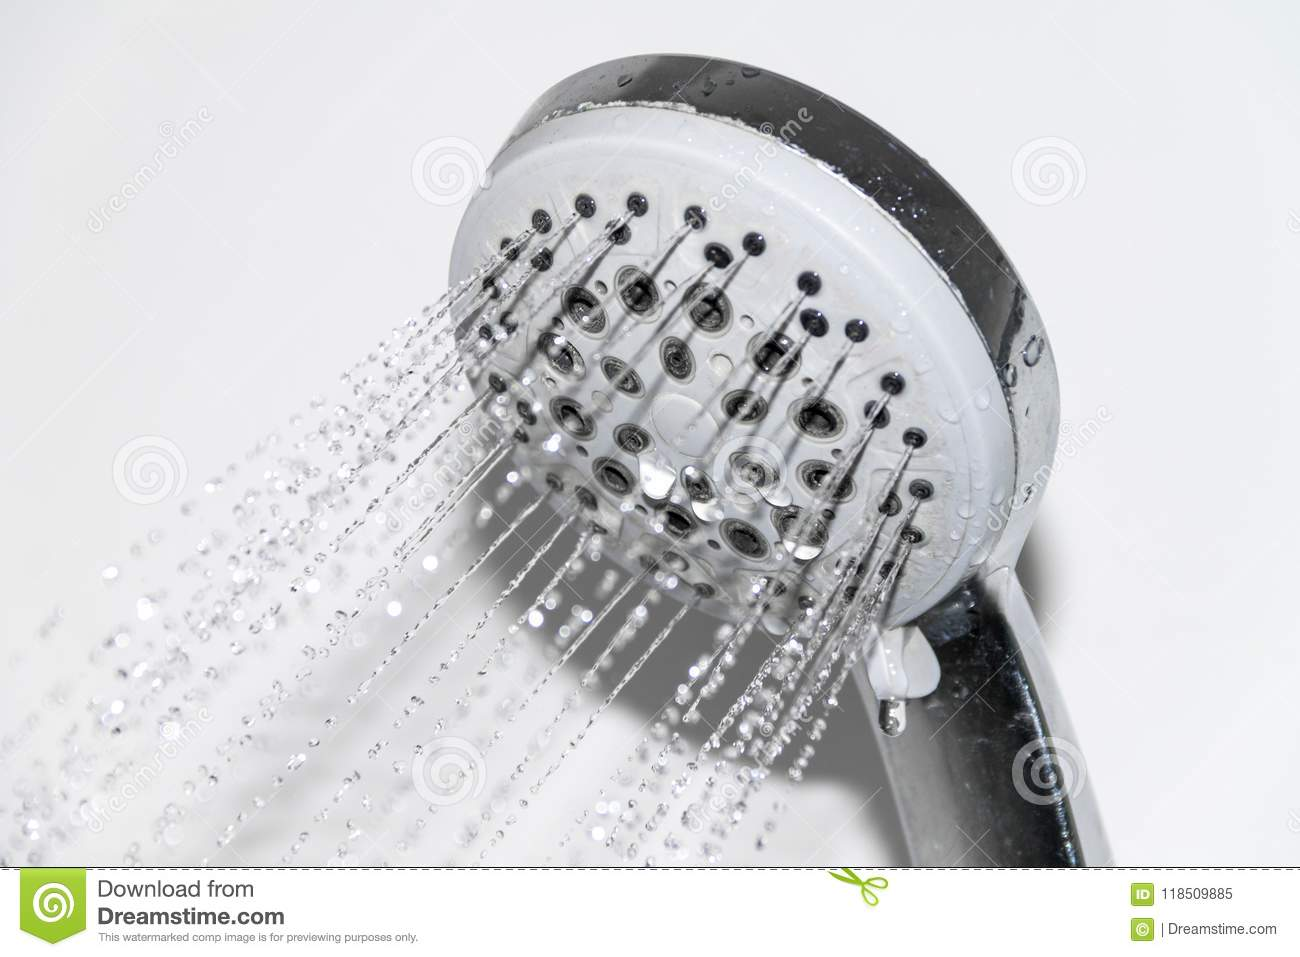 Wet faucet in the shower, water flows from the shower